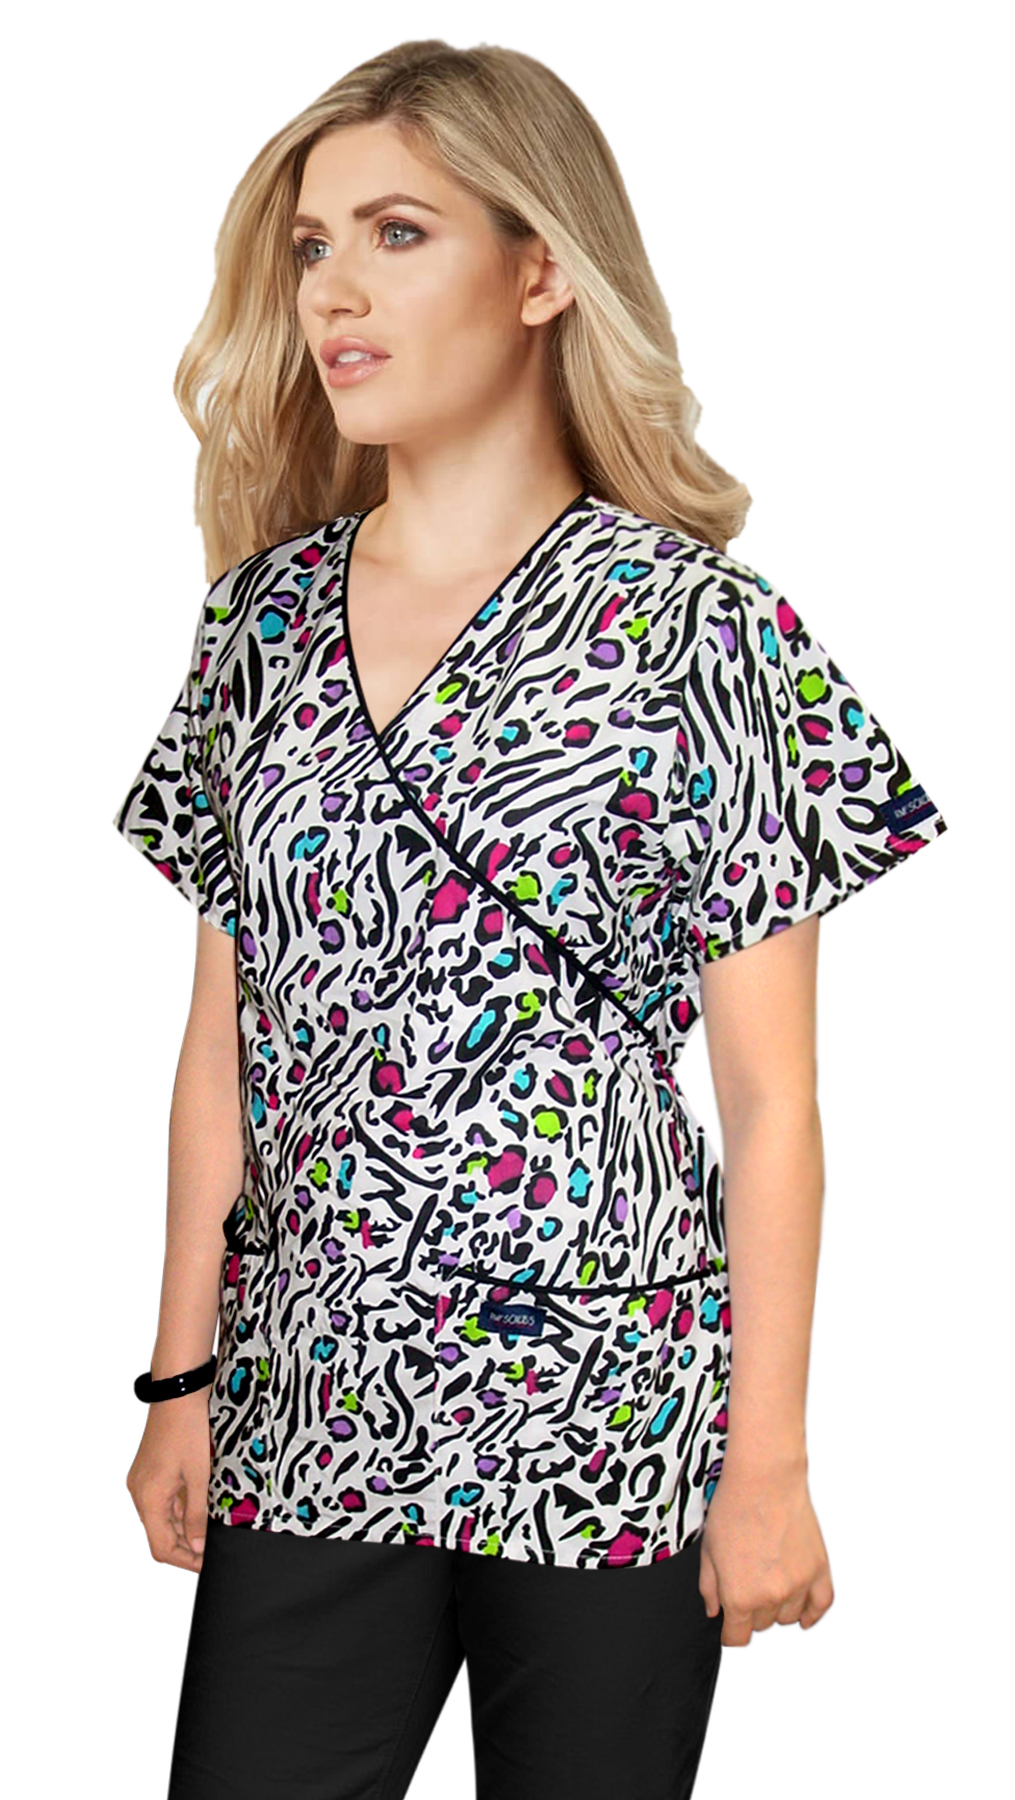 Printed scrub set mock wrap 5 pocket half sleeve in Leopard print with black piping (top 3 pocket with bottom 2 pocket boot cut)